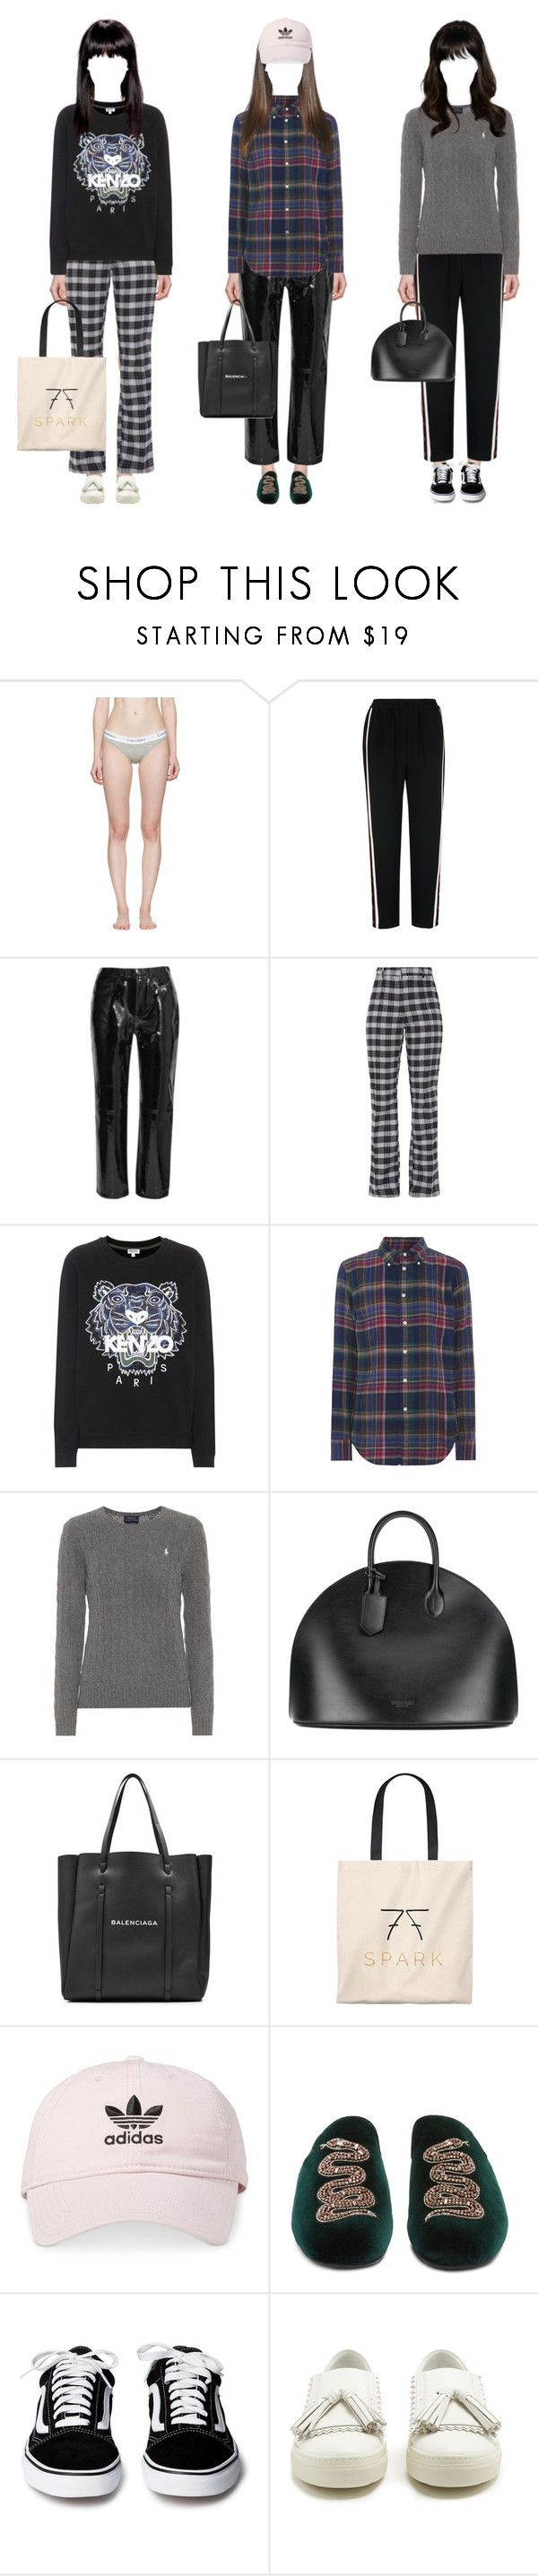 """""""HIROSE - [MNET] - Arriving At Hong Kong 112917"""" by official-gold ❤ liked on Polyvore featuring Calvin Klein Underwear, Whistles, rag & bone, Kenzo, Polo Ralph Lauren, Calvin Klein 205W39NYC, Balenciaga, adidas, Gucci and Tod's"""